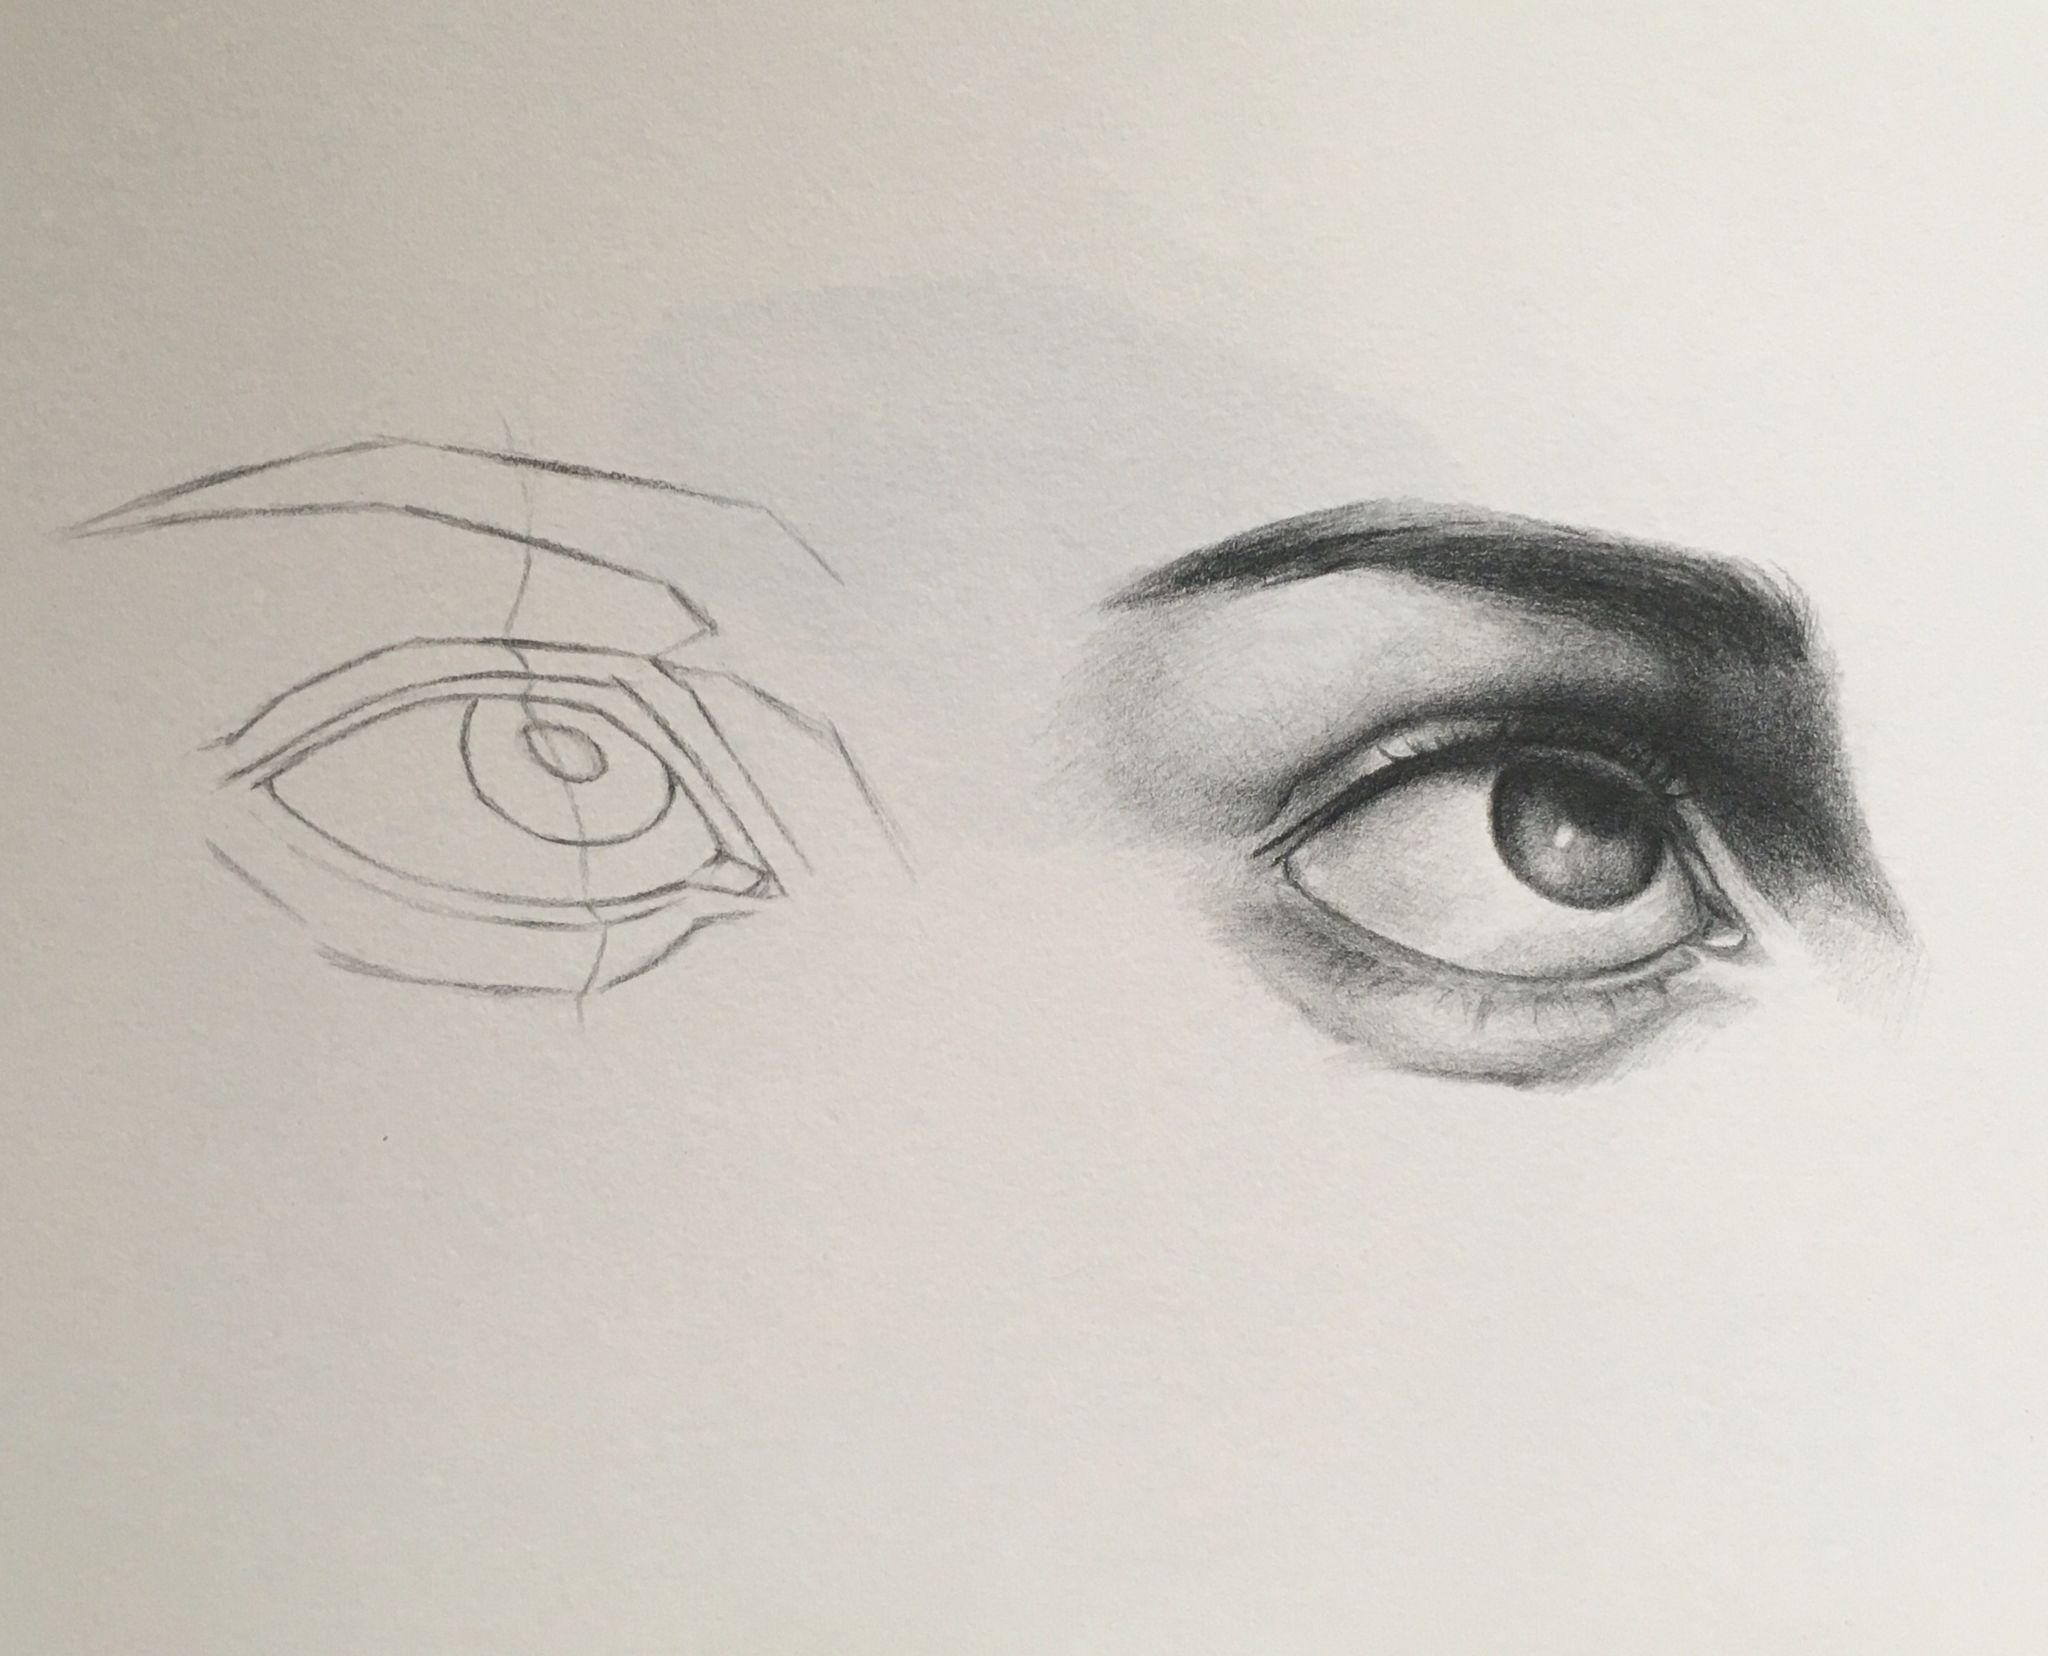 Eye Study Drawing Done After Drawing The Human Face By